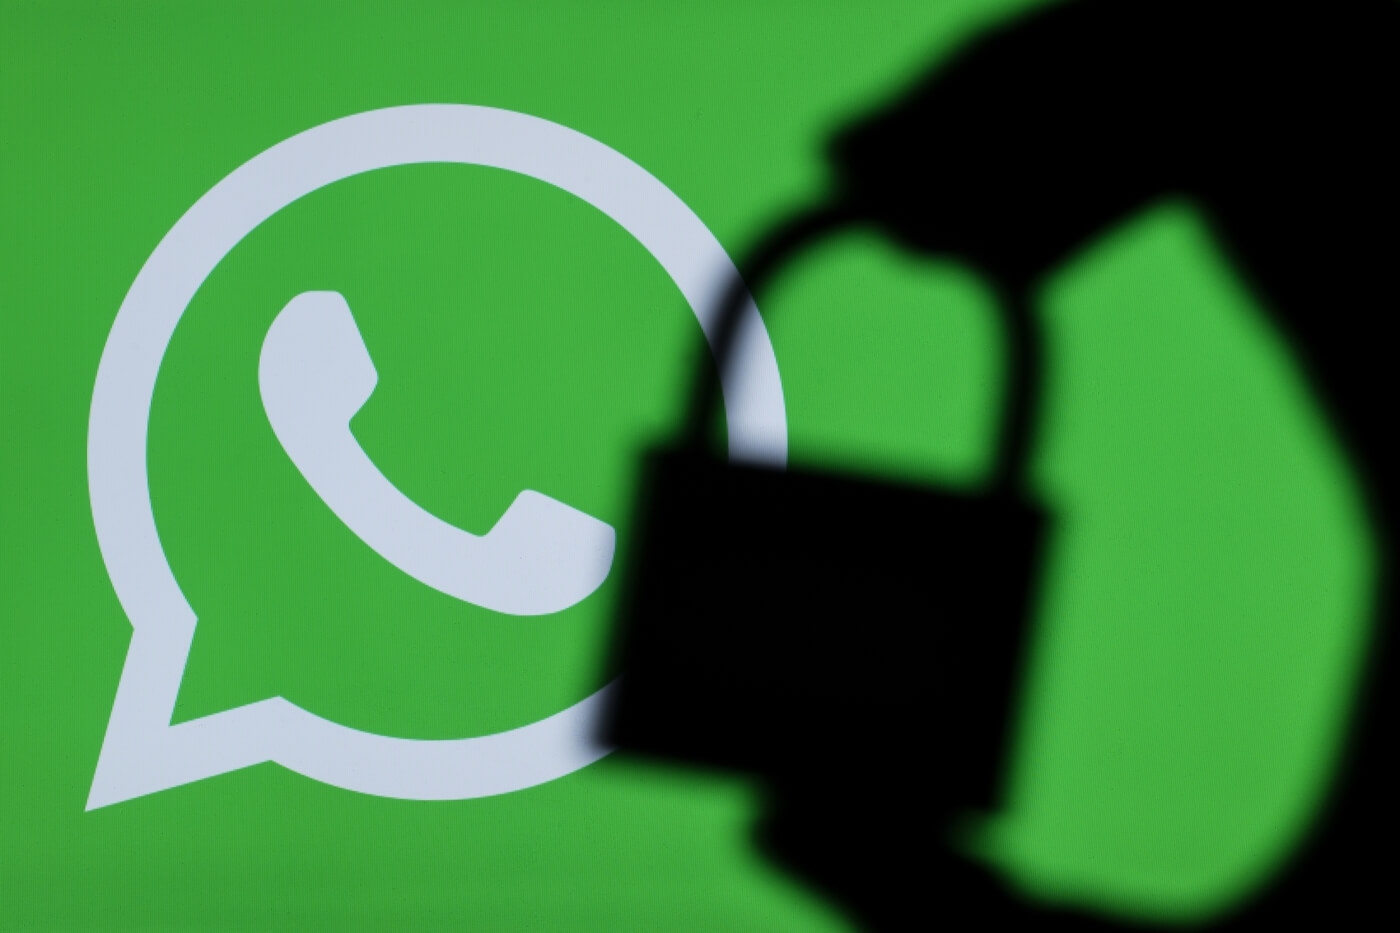 WhatsApp desktop app vulnerabilities led to remote file access, code execution